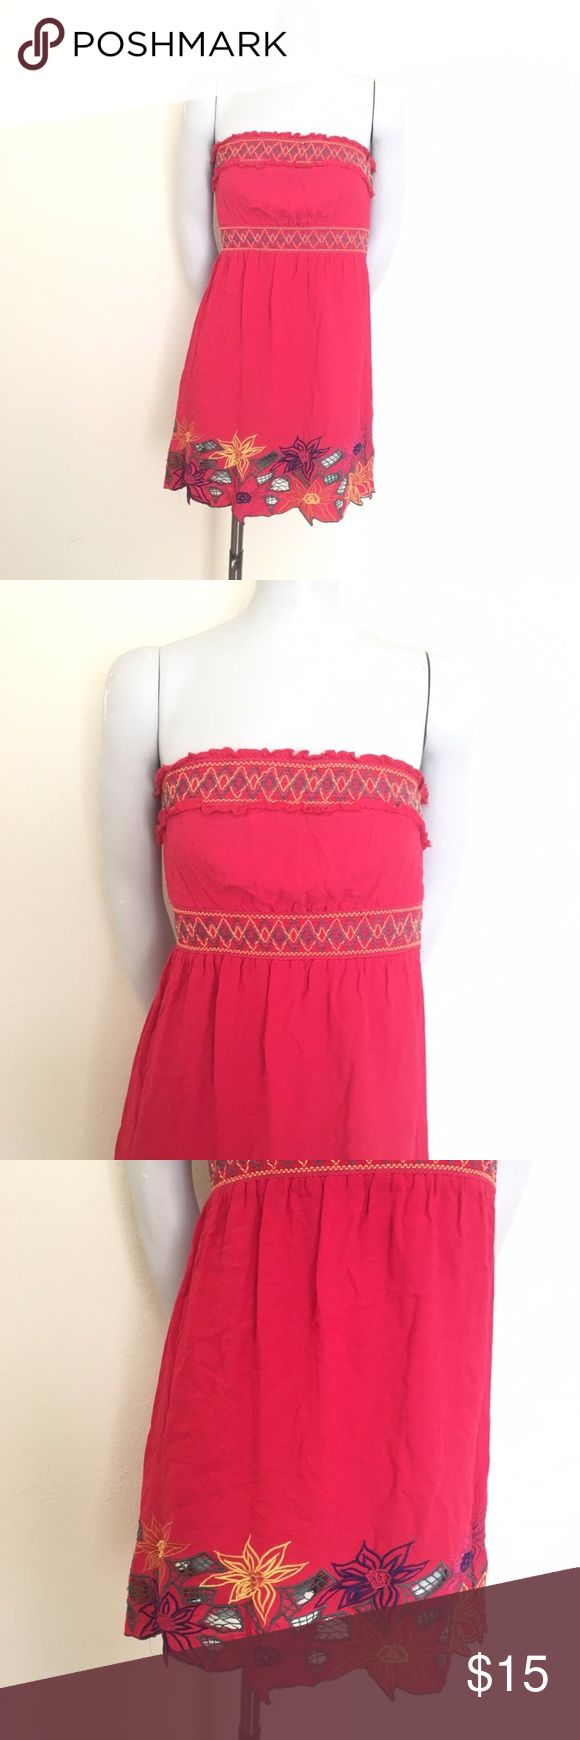 "Forever 21 Embroidered LaserCut Strapless Sundress - Size: Small - Material: Rayon - Condition: EUC, small flaw on back, pictures  - Color: Coral/Multi - Pockets: No -Stretch: Yes   *Measurements taken laying flat:  Bust:13"" not stretched  Waist: 10.5"" not stretched  Length: 27"" from neckline     * Almost all my prices are negotiable and no offer offends me! * Forever 21 Dresses Strapless"